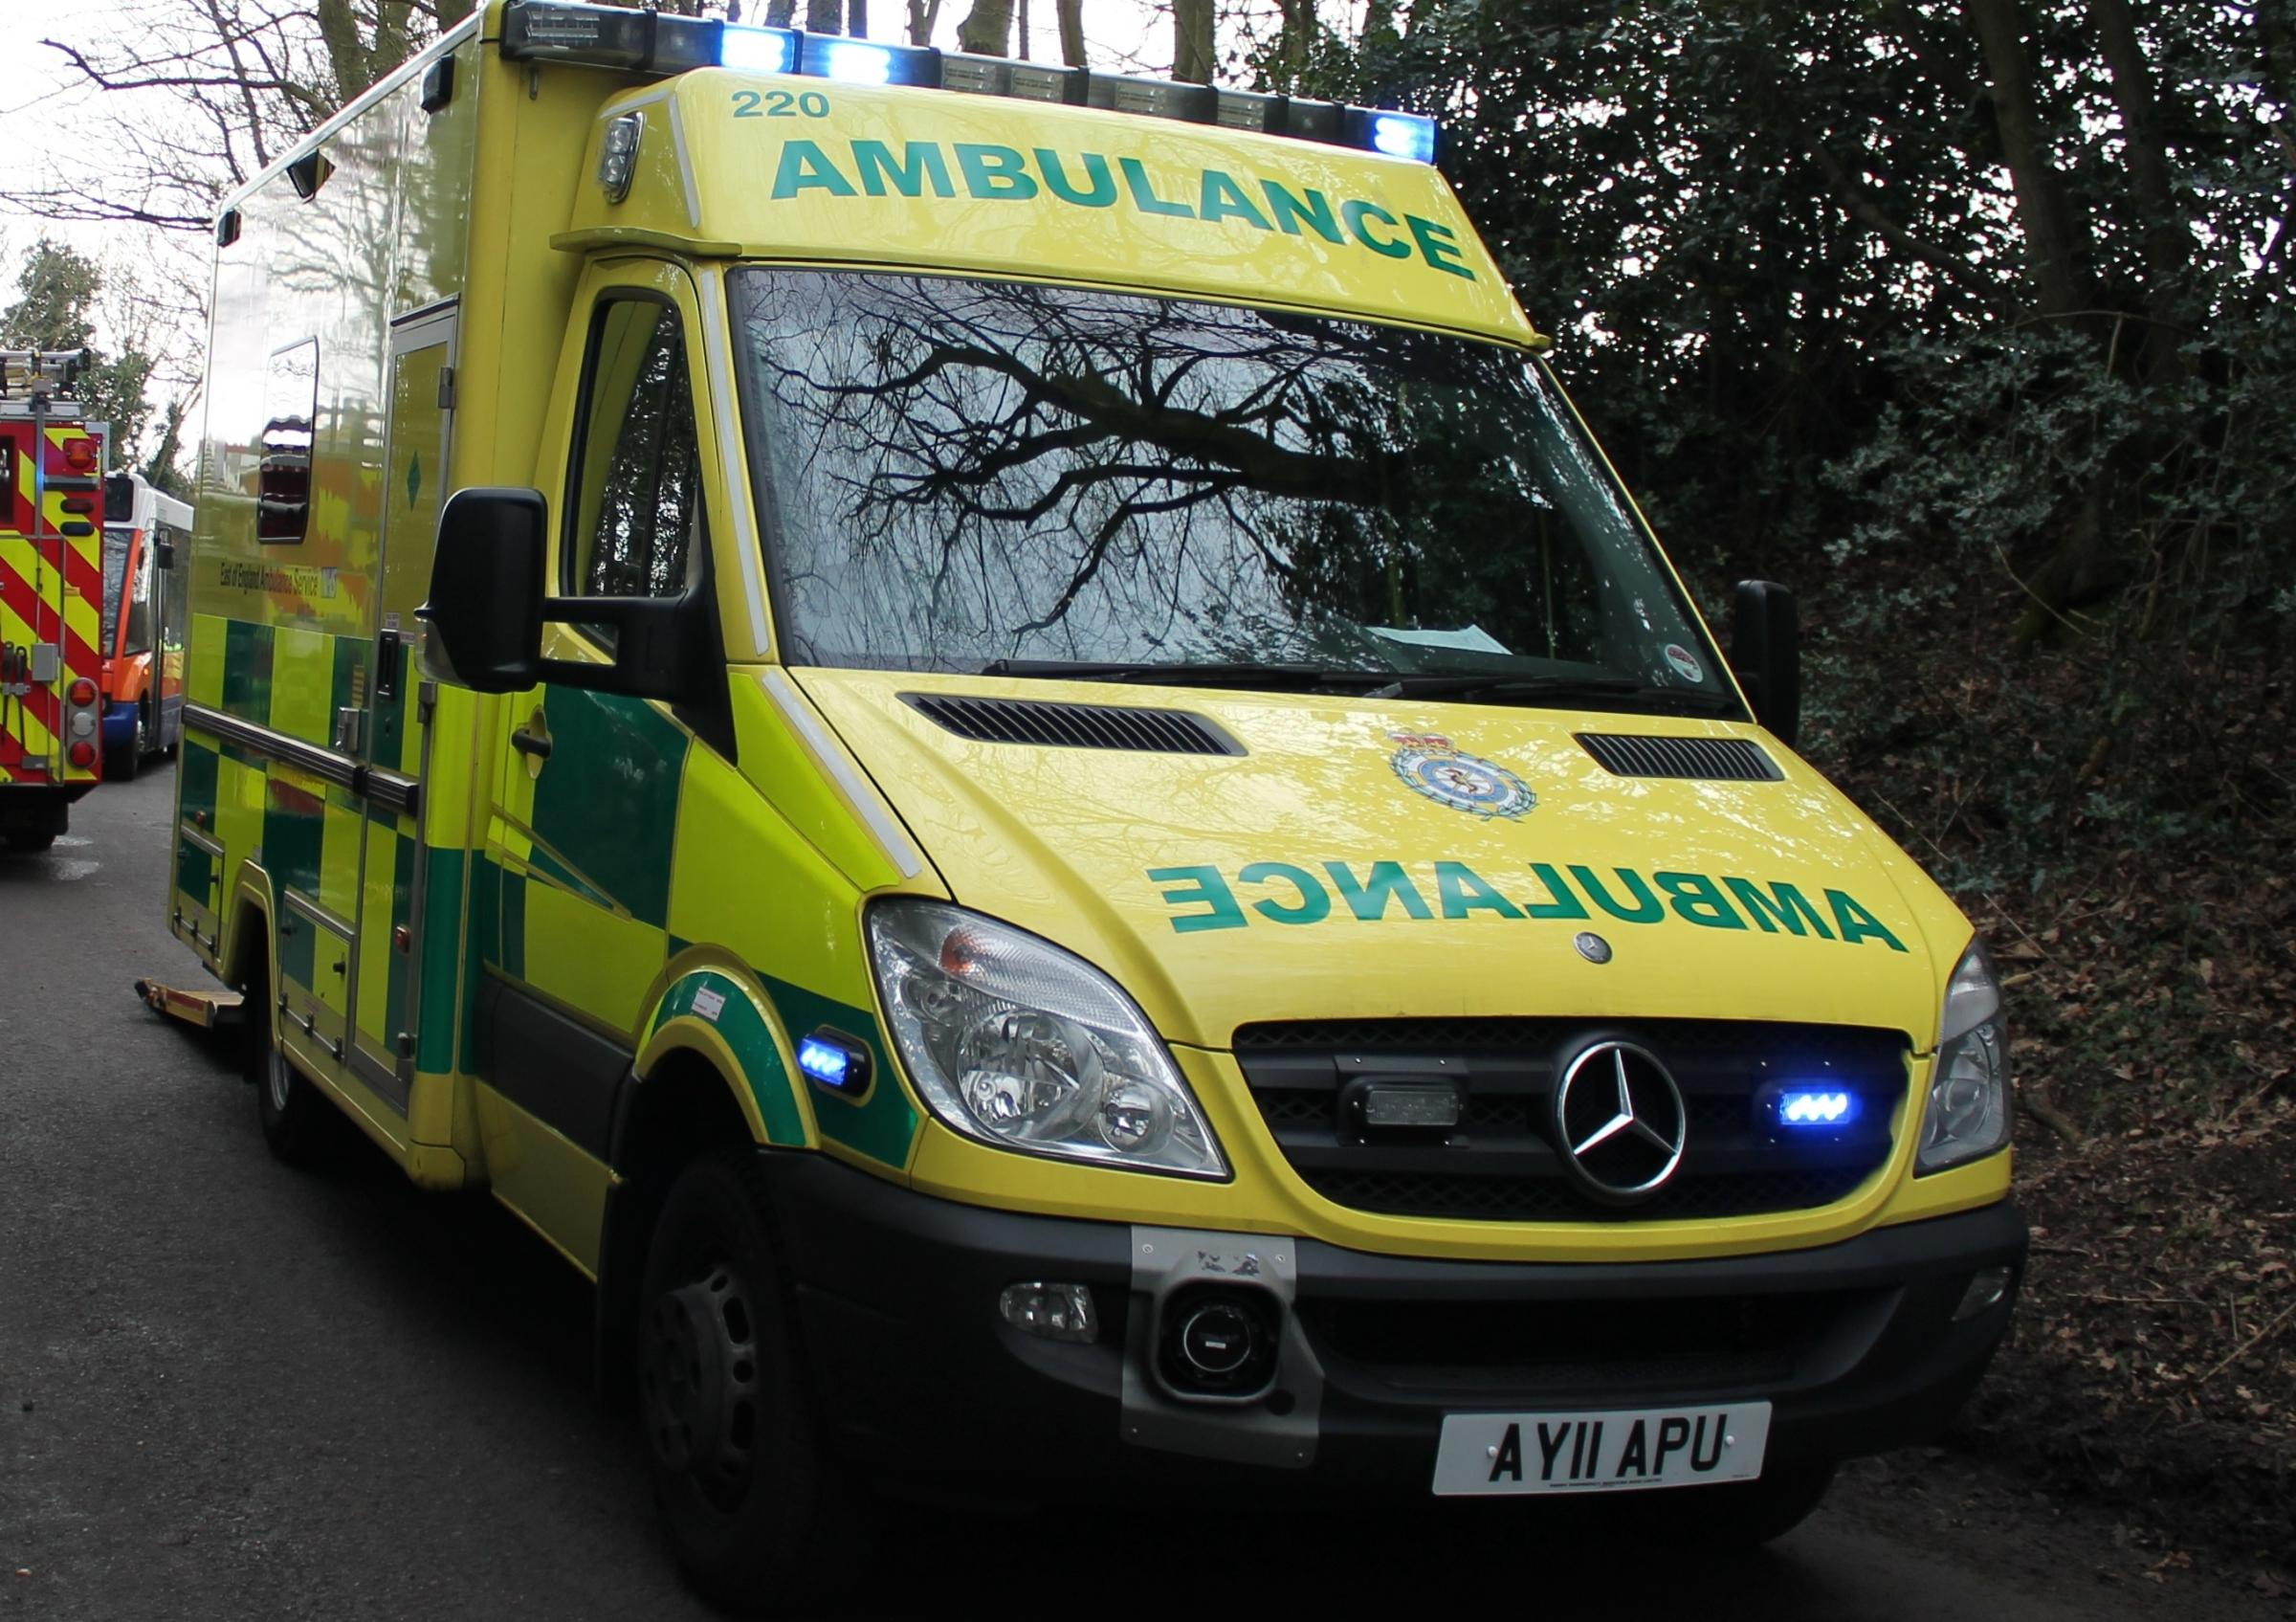 Attacks on ambulance staff on the increase